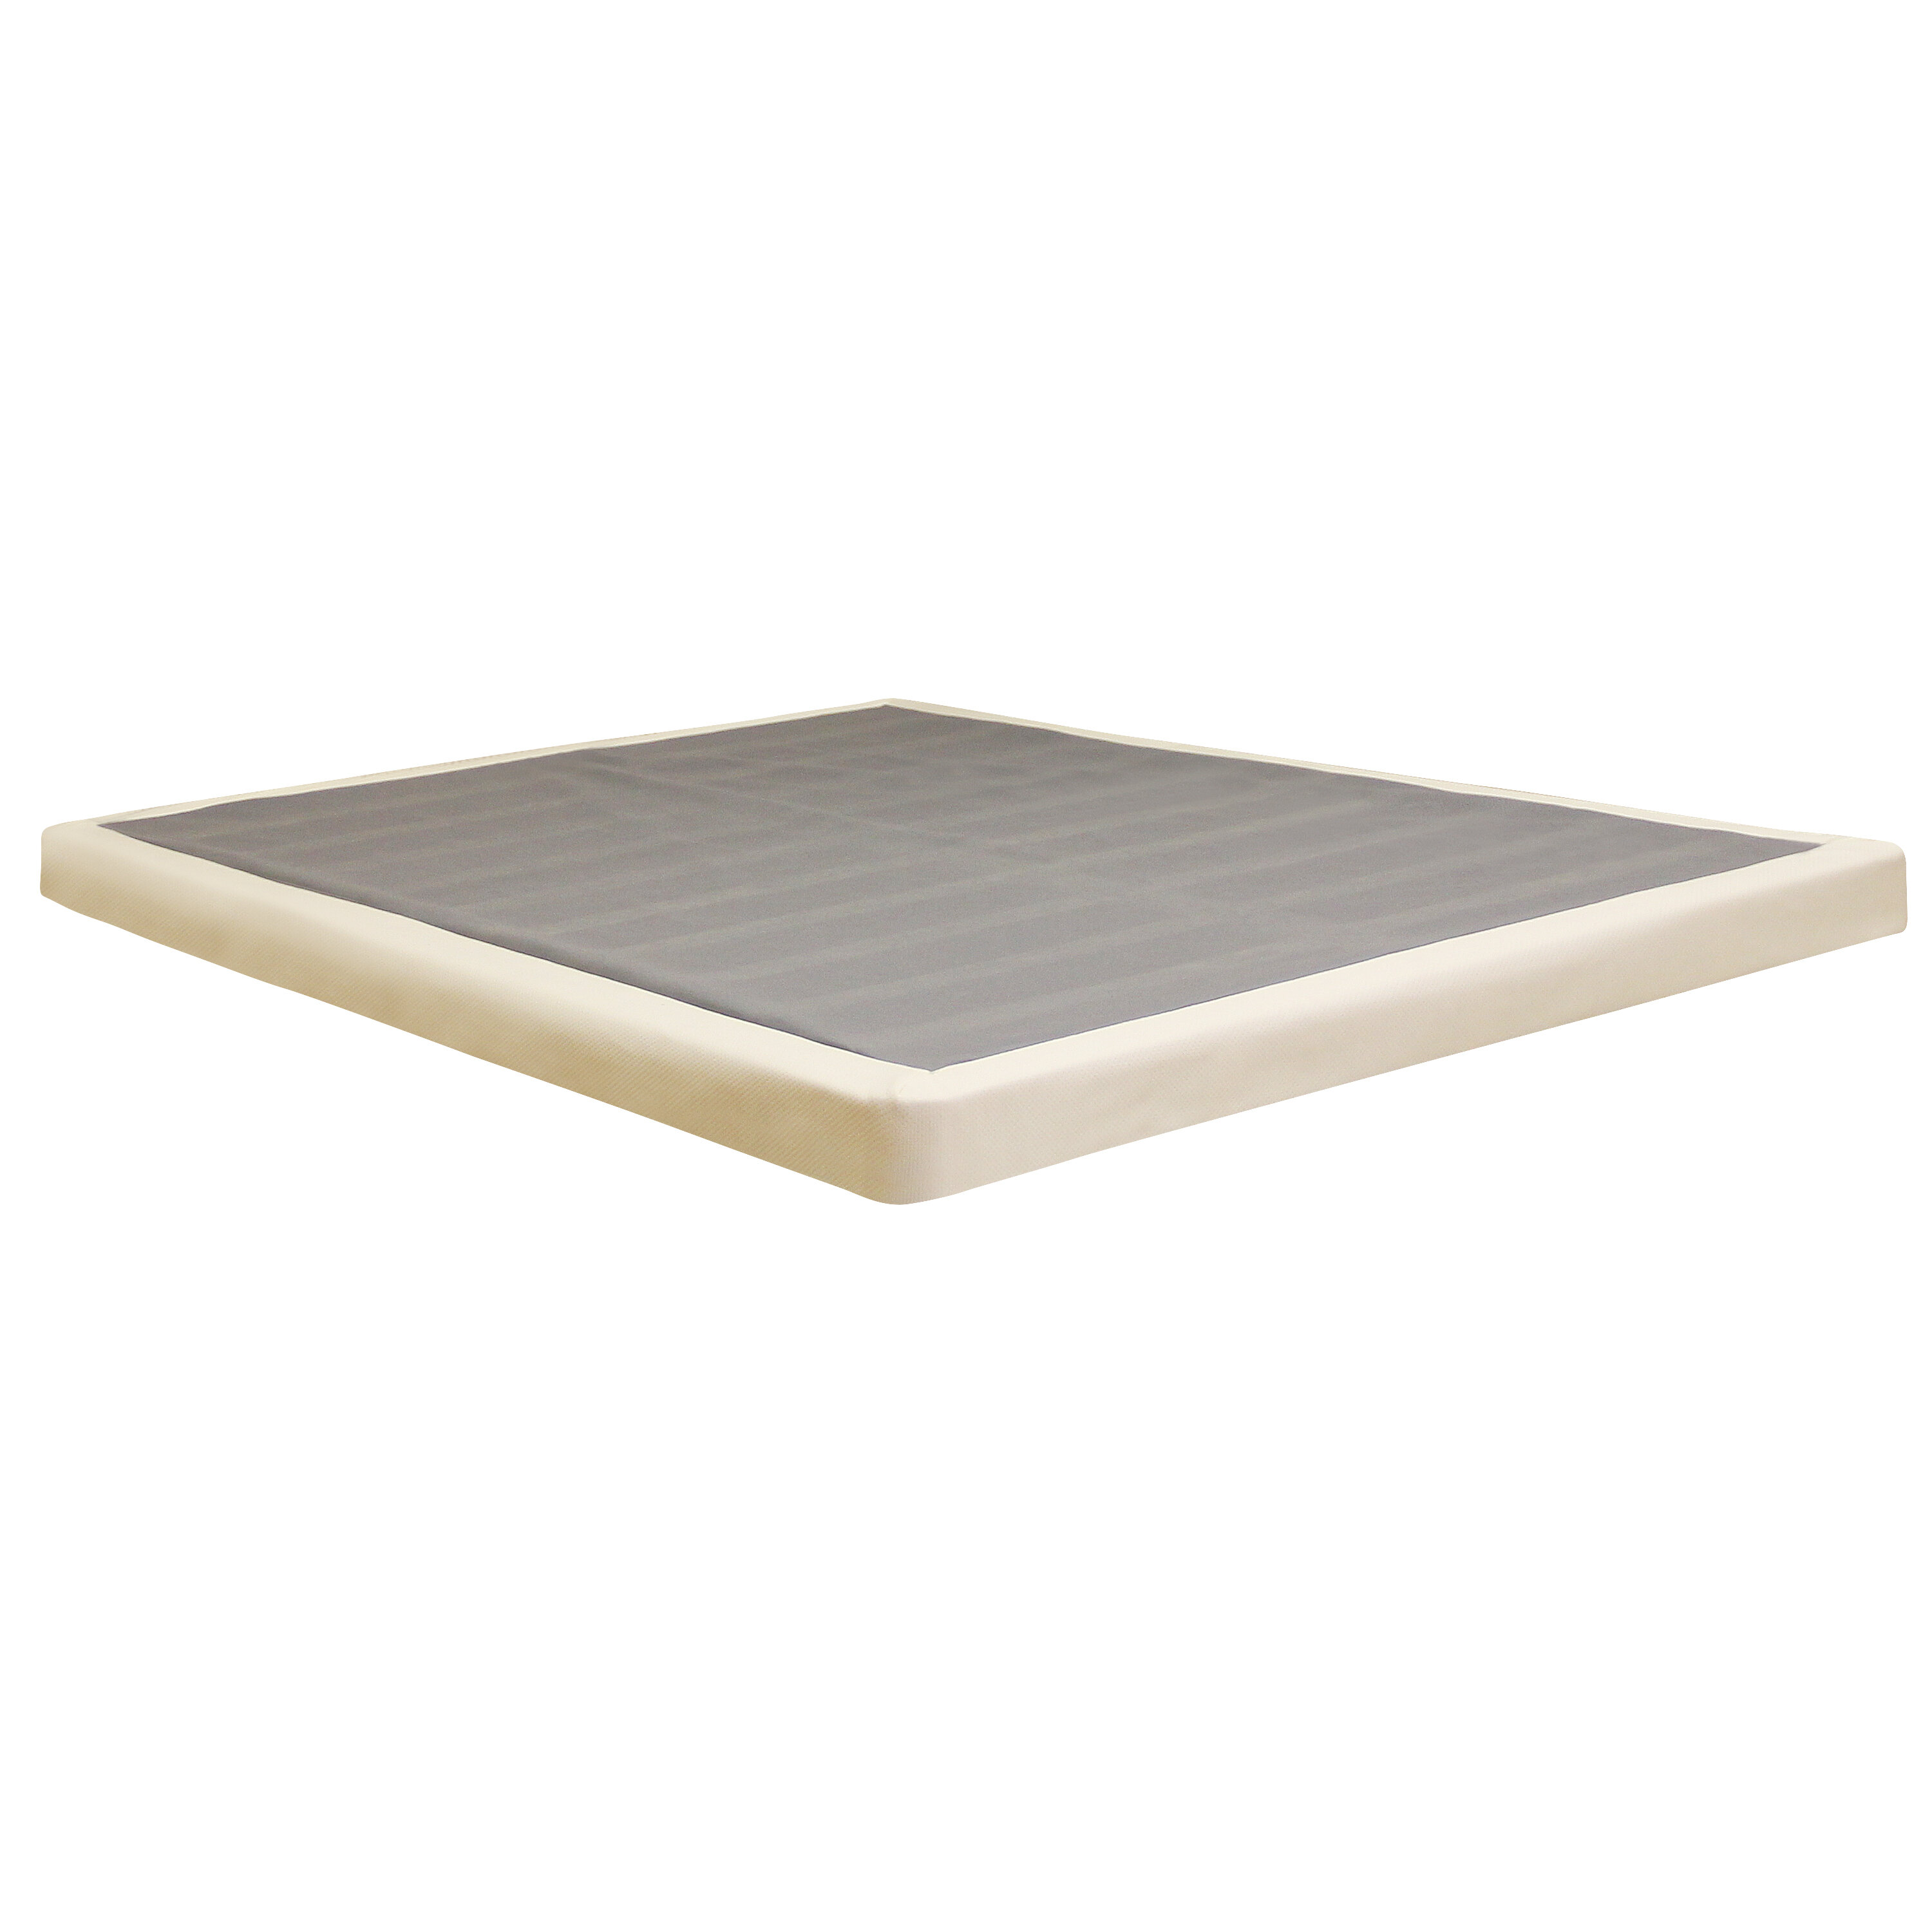 and with furniture from dsc homecentre jpg qatar tables side originally bed orthopedic items bought mattress living